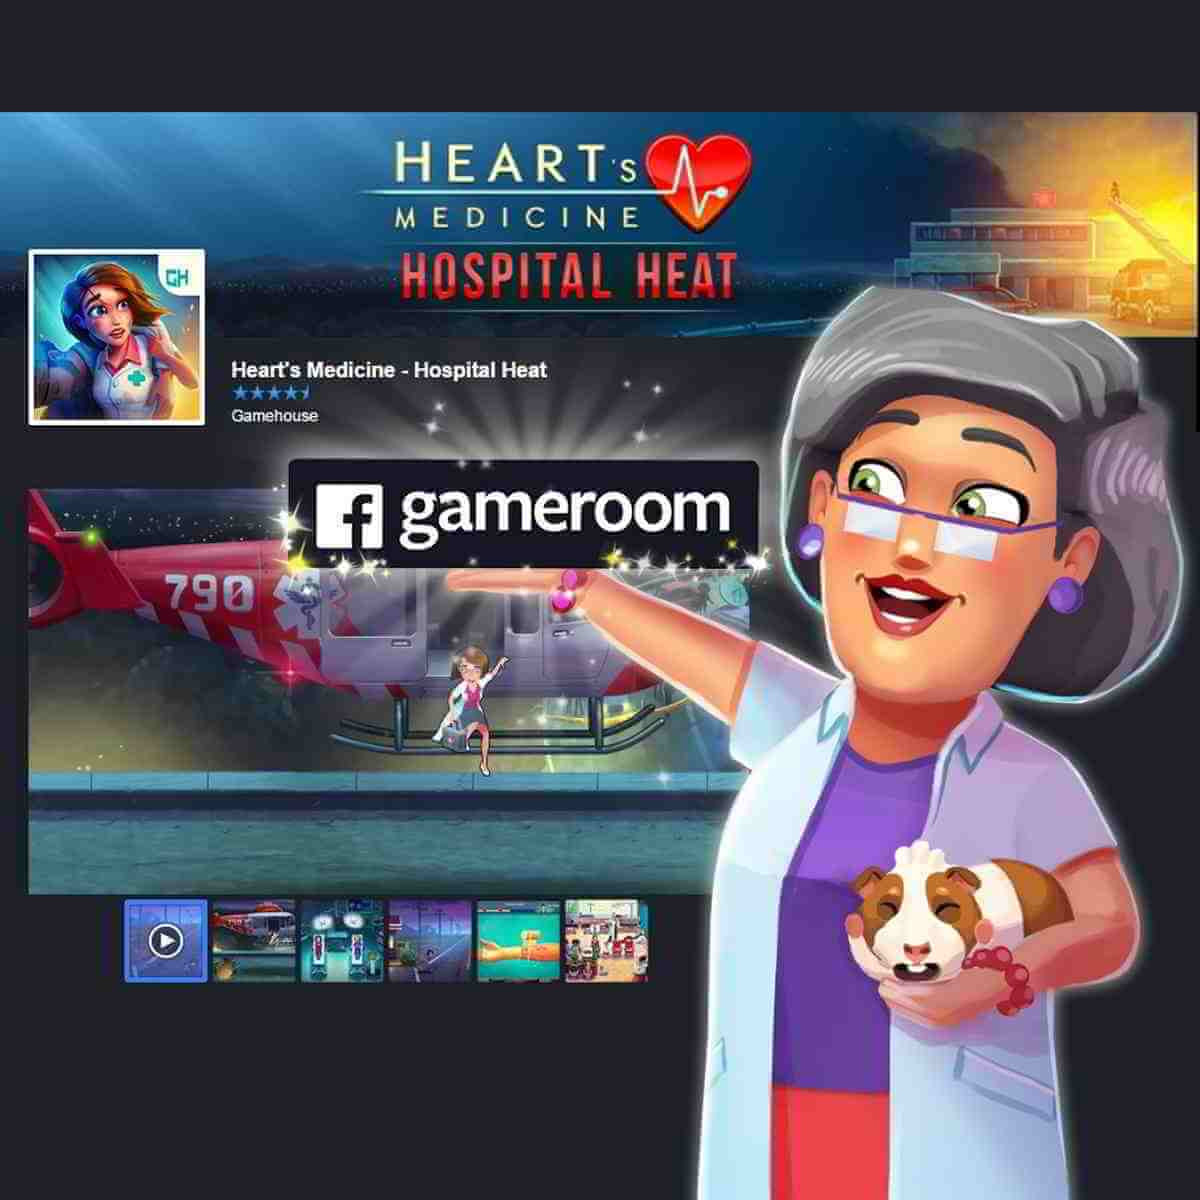 Best ideas about Facebook Game Room . Save or Pin Gameroom won't install open or Here's Now.